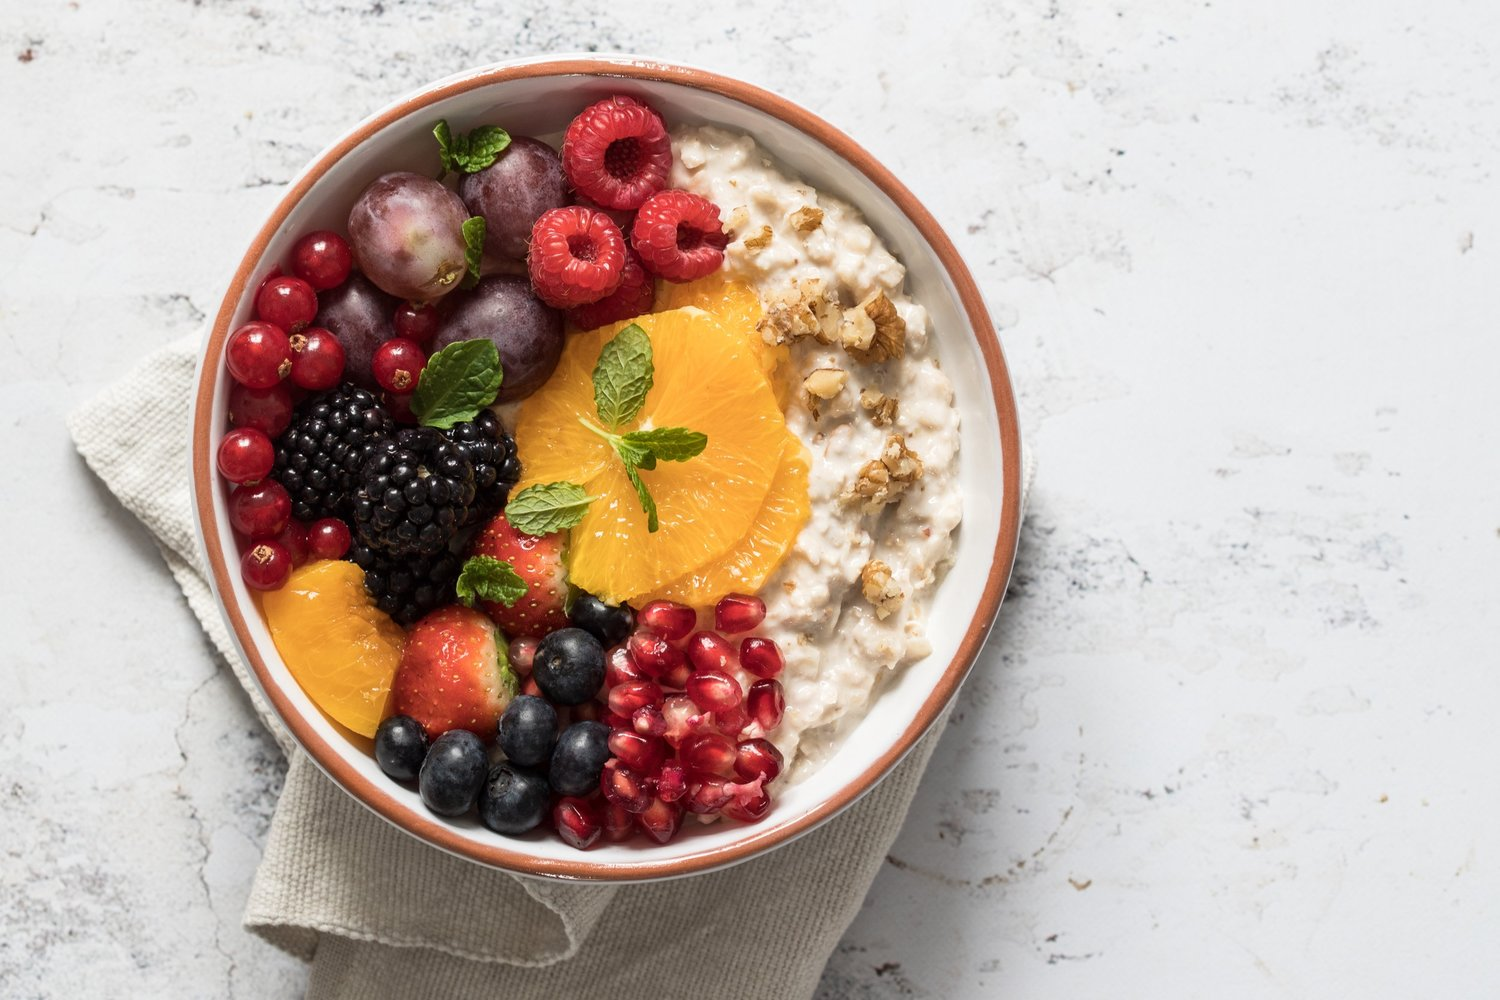 food2run_muesli_runnersdream_birchermuesli_fruits_recette_coureur.jpg